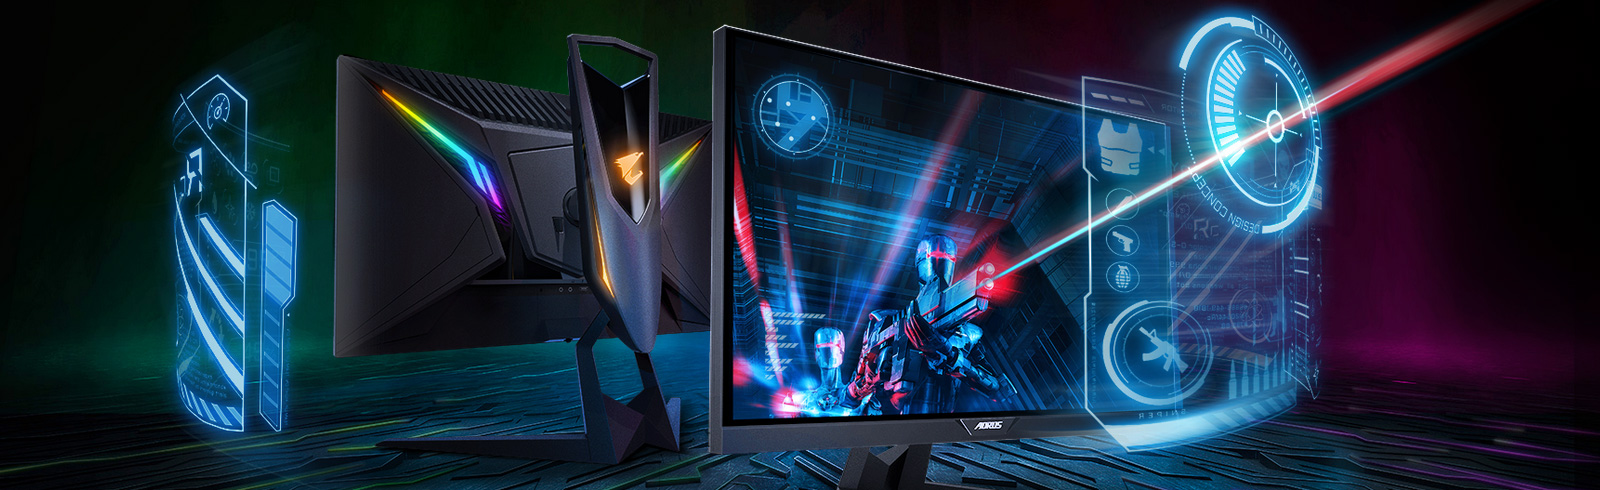 Gigabyte announces yet another AORUS gaming monitor - the AORUS KD25F with 240Hz refresh rate